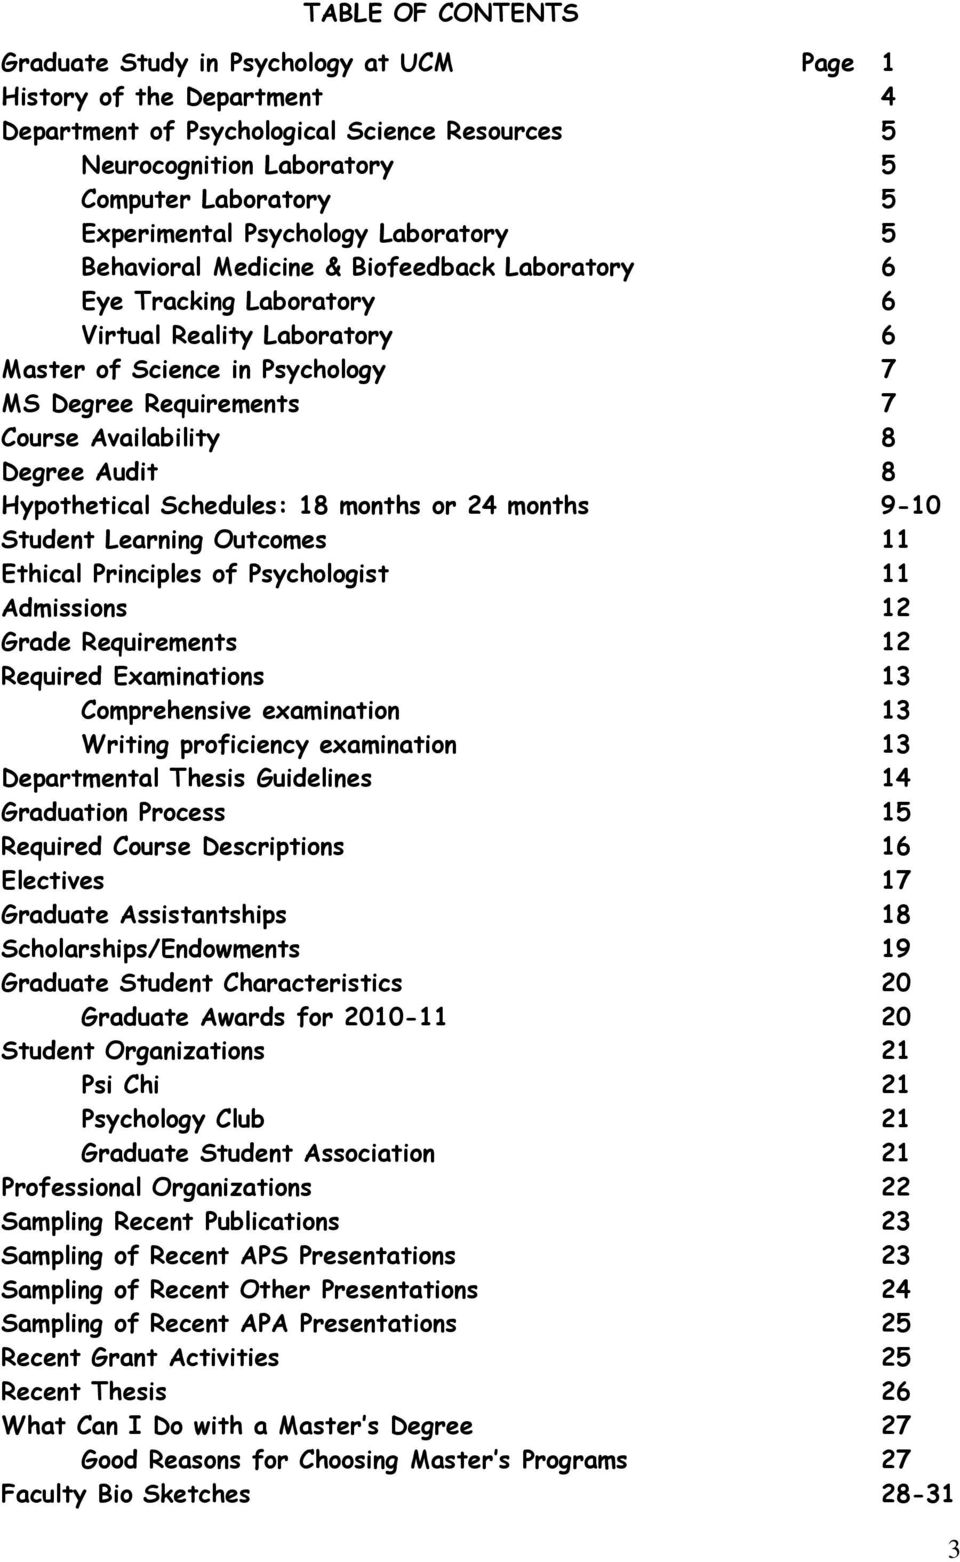 Availability 8 Degree Audit 8 Hypothetical Schedules: 18 months or 24 months 9-10 Student Learning Outcomes 11 Ethical Principles of Psychologist 11 Admissions 12 Grade Requirements 12 Required